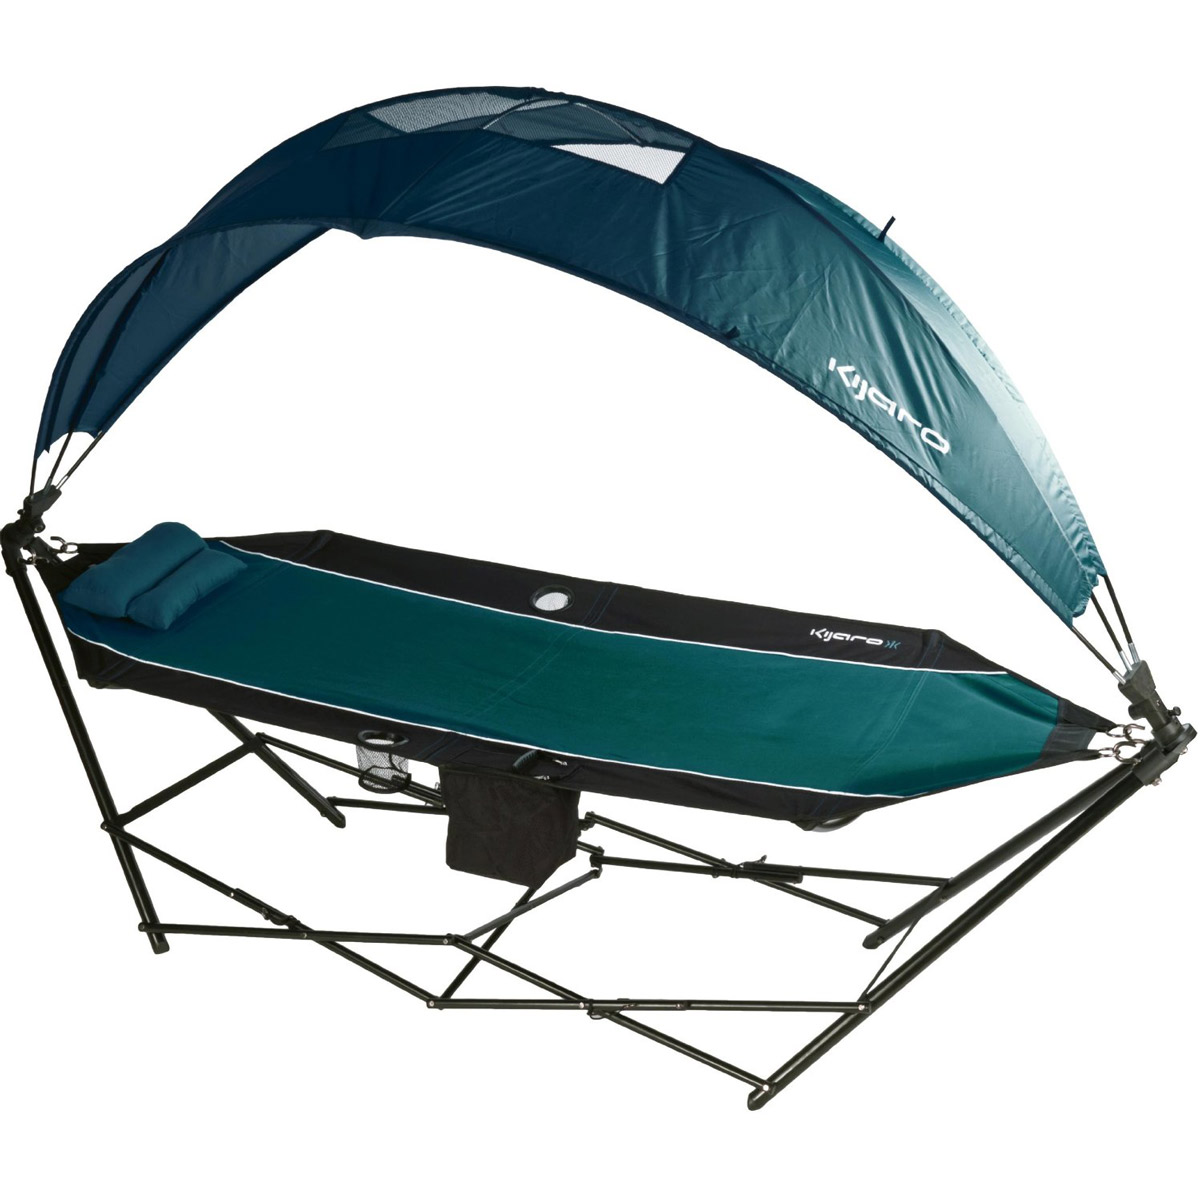 Kijaro Portable Hammock With Canopy Cooler on Portable Folding Chair With Canopy